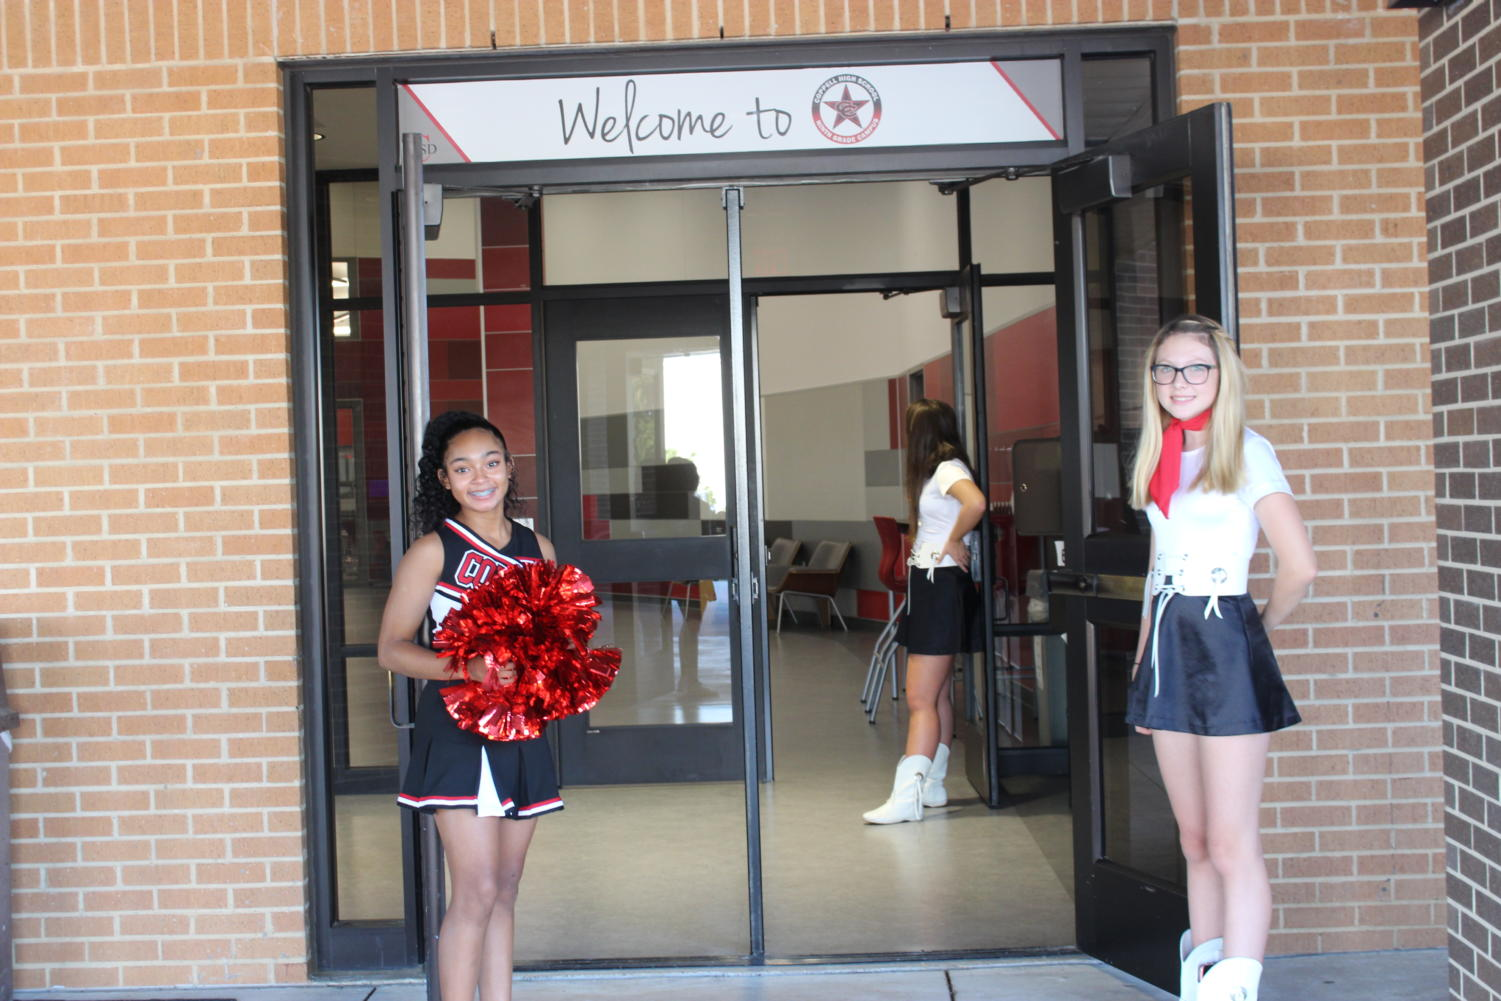 Freshmen+cheerleaders+and+Silver+Stars+greet+parents+as+they+arrive+at+the+CHS9+campus.+CHS9+Curriculum+Night+took+place+on+Tuesday+from+6-8+p.m.